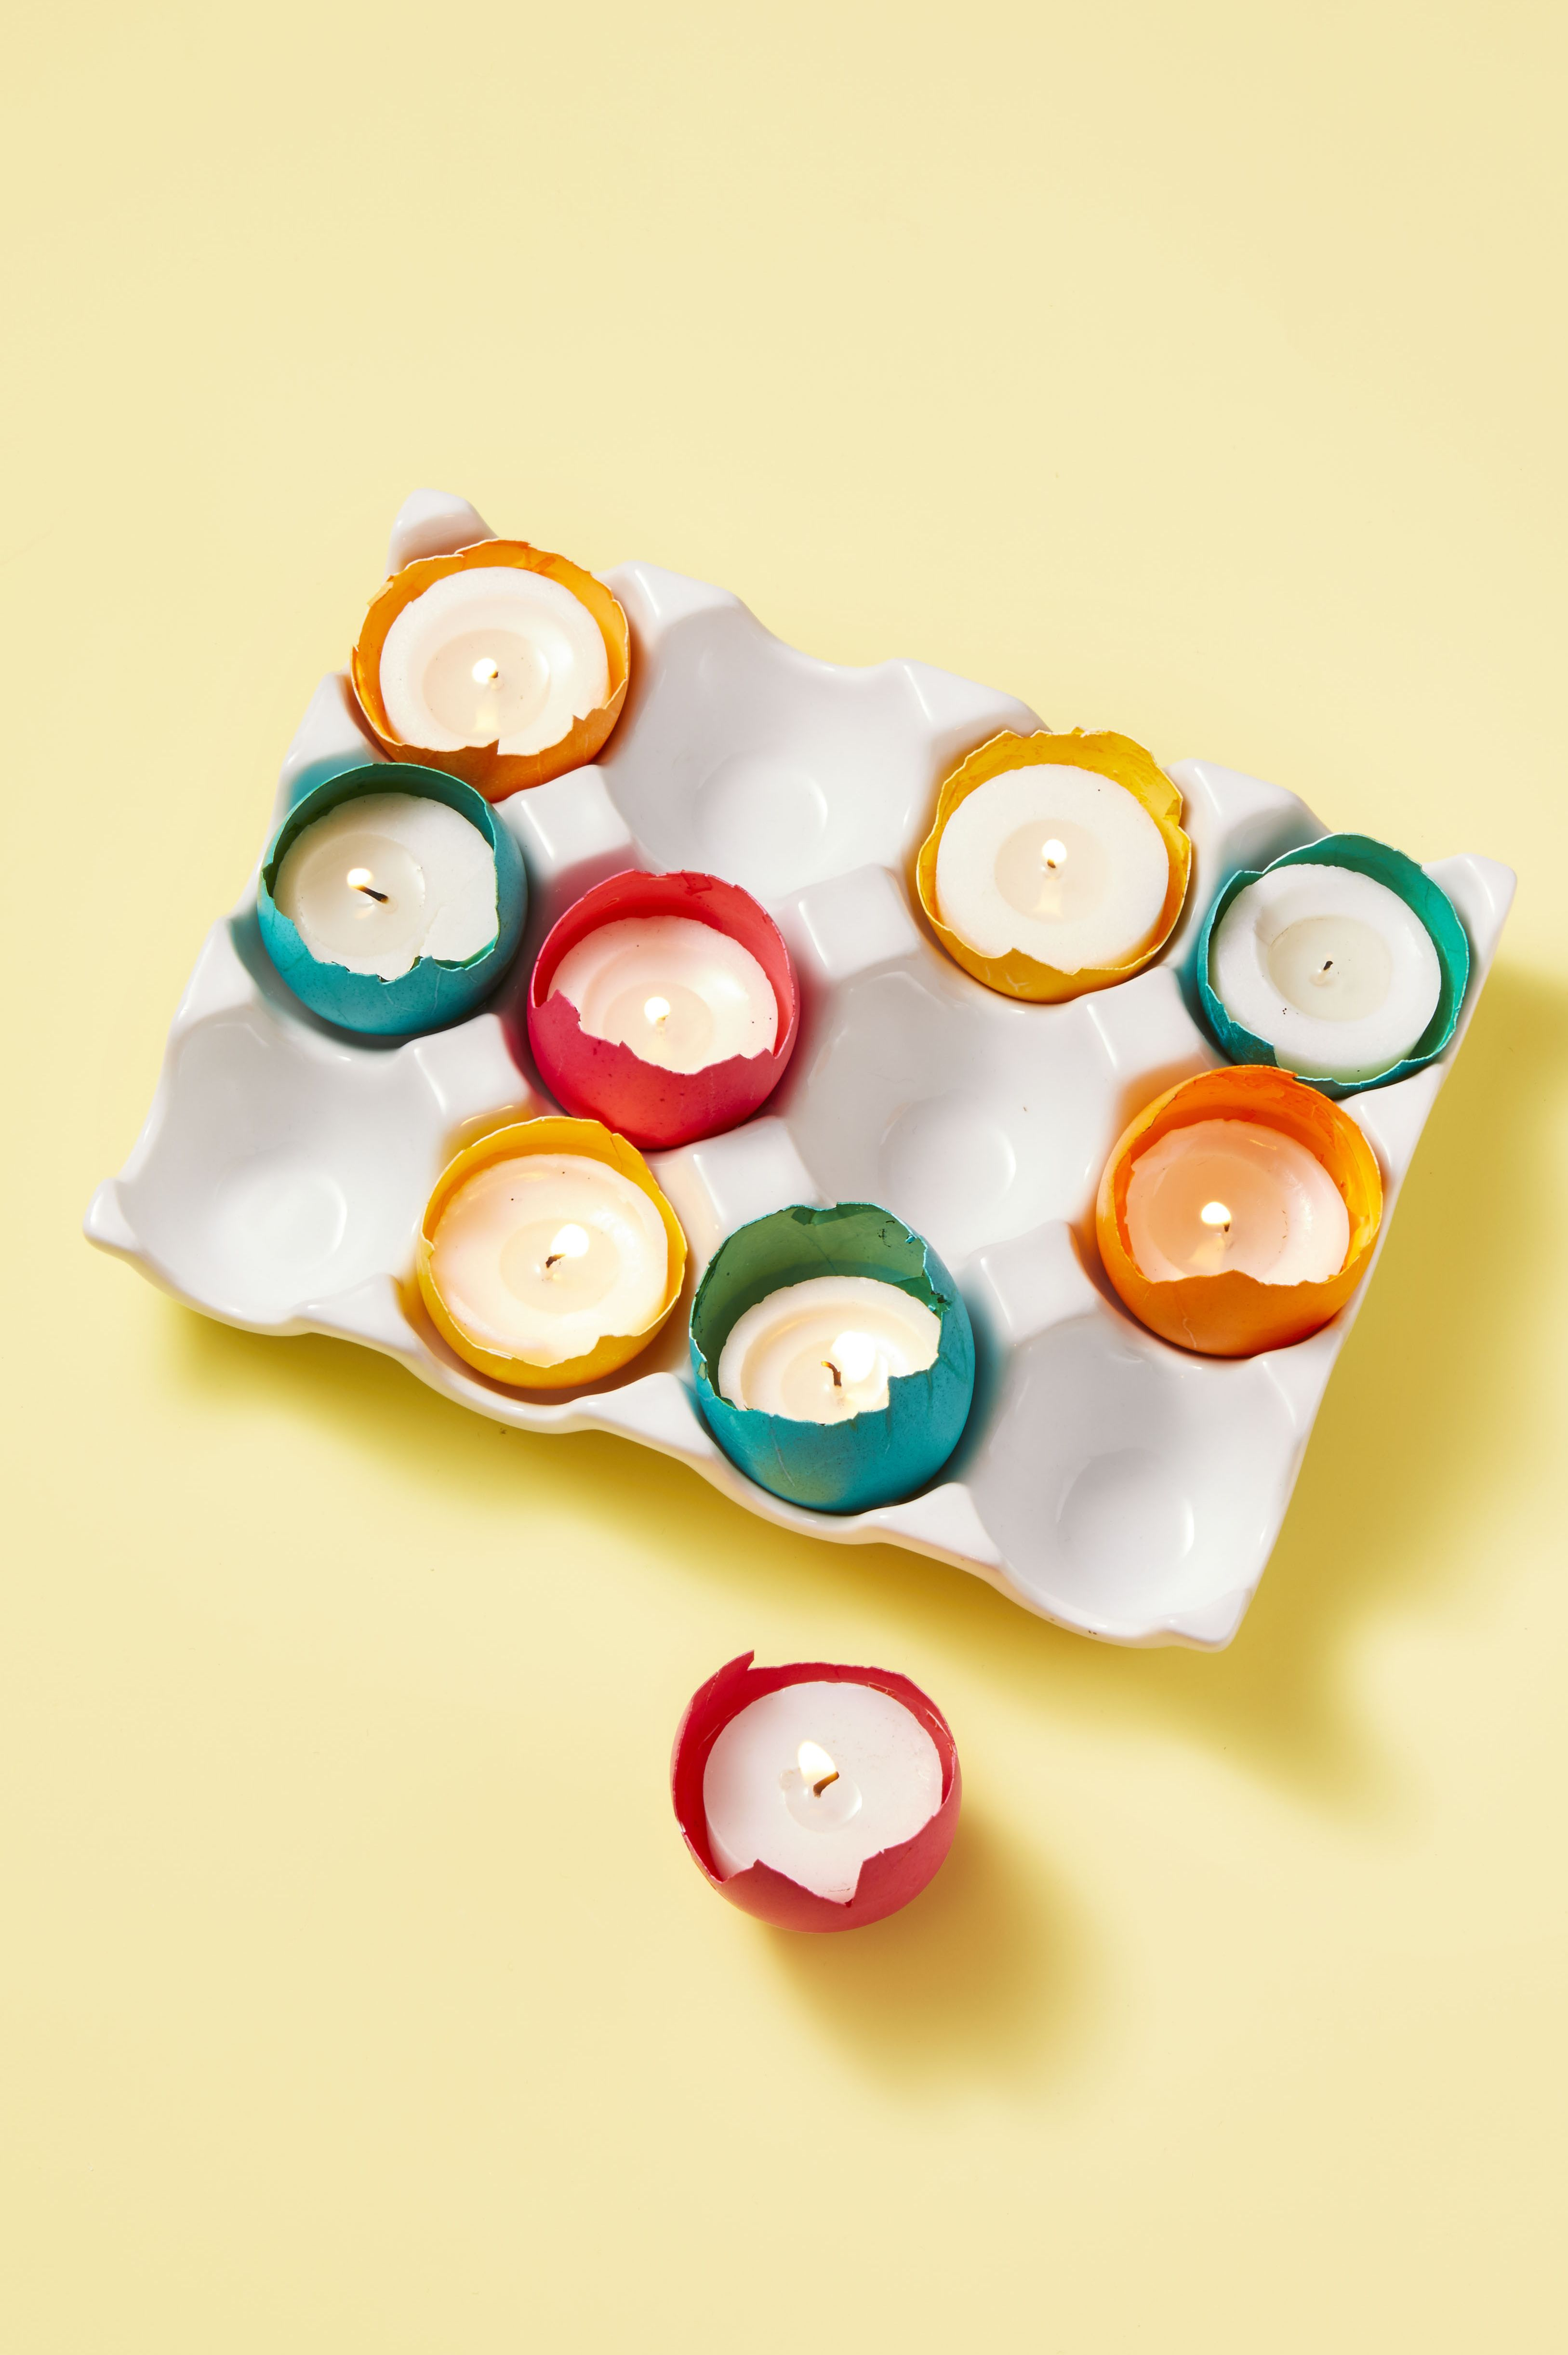 Easter Decorations Tealight Candles in Colored Eggshells